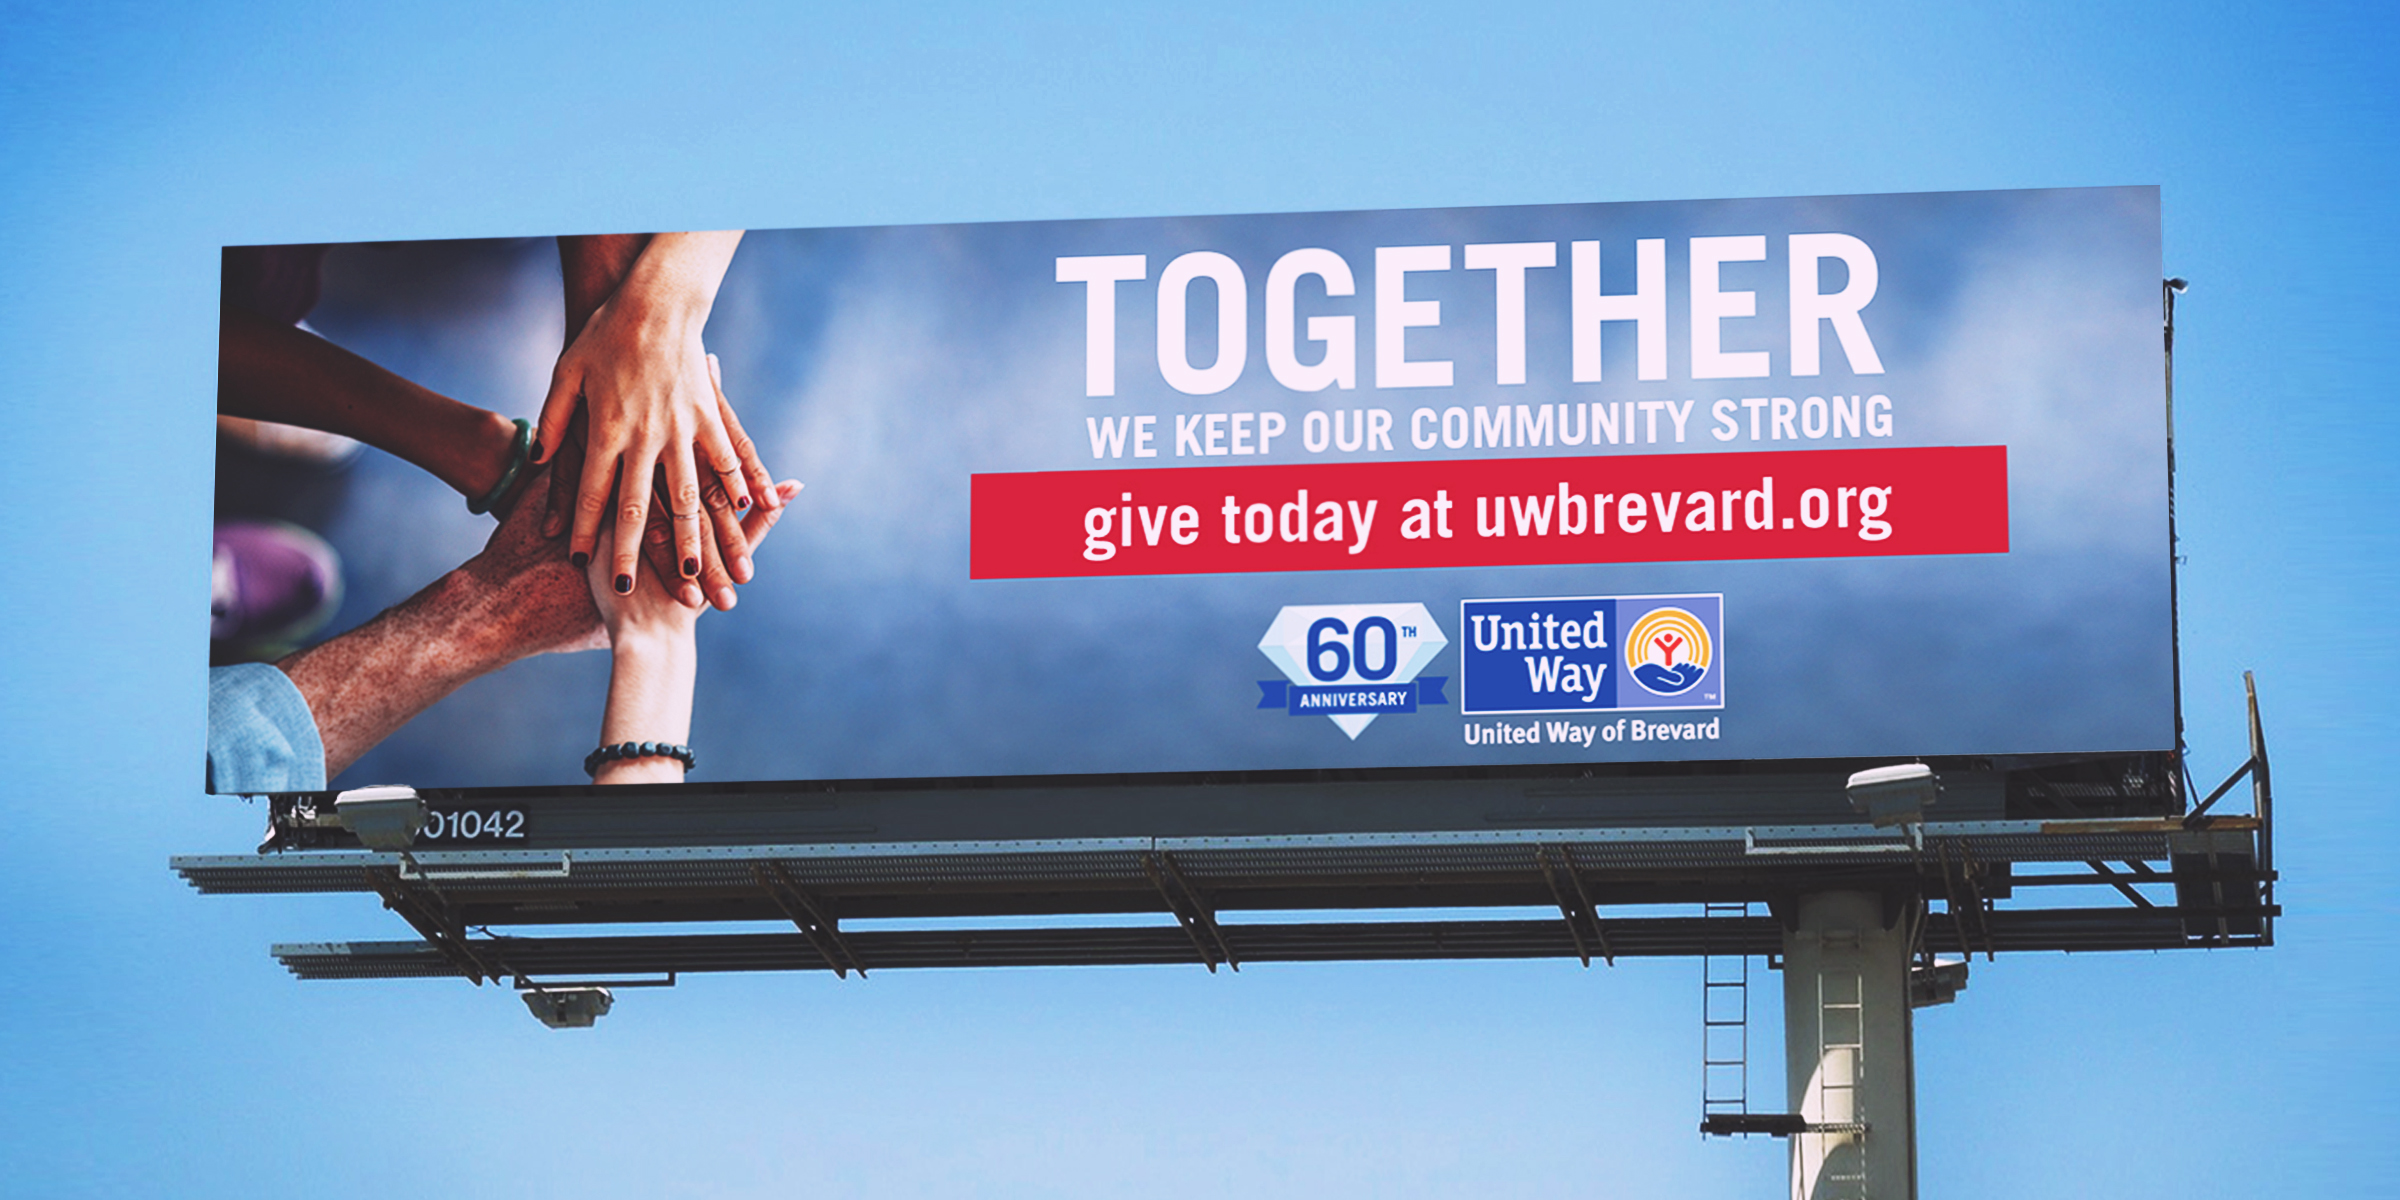 United way together campaign billboard